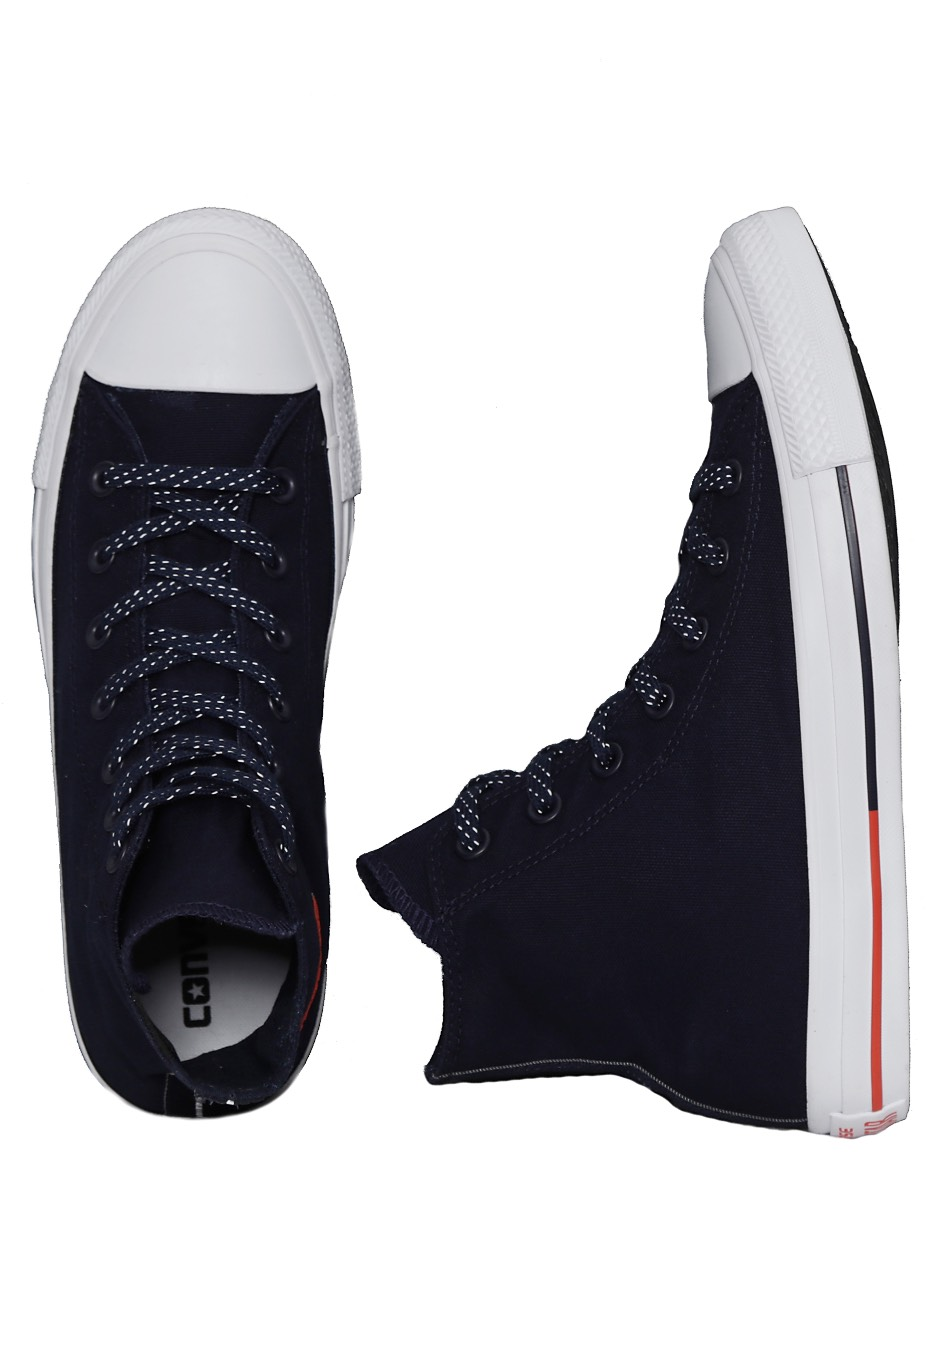 95982461f789 Converse - Chuck Taylor All Star Hi Obsidian White Signal Red - Girl Shoes  - Impericon.com UK